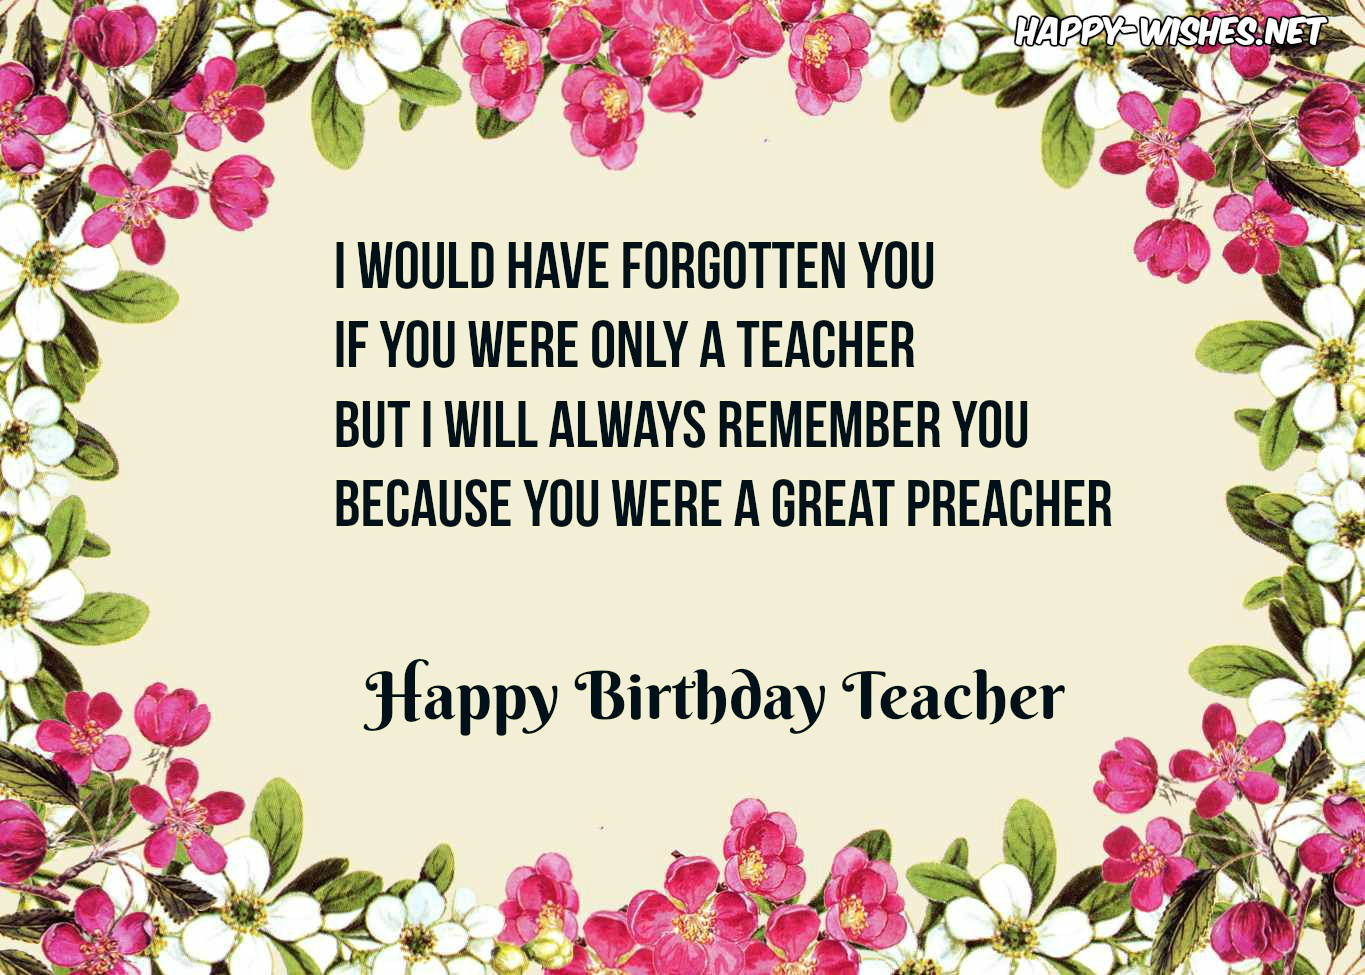 Happy Birthday Wishes For Teacher - Quotes & images